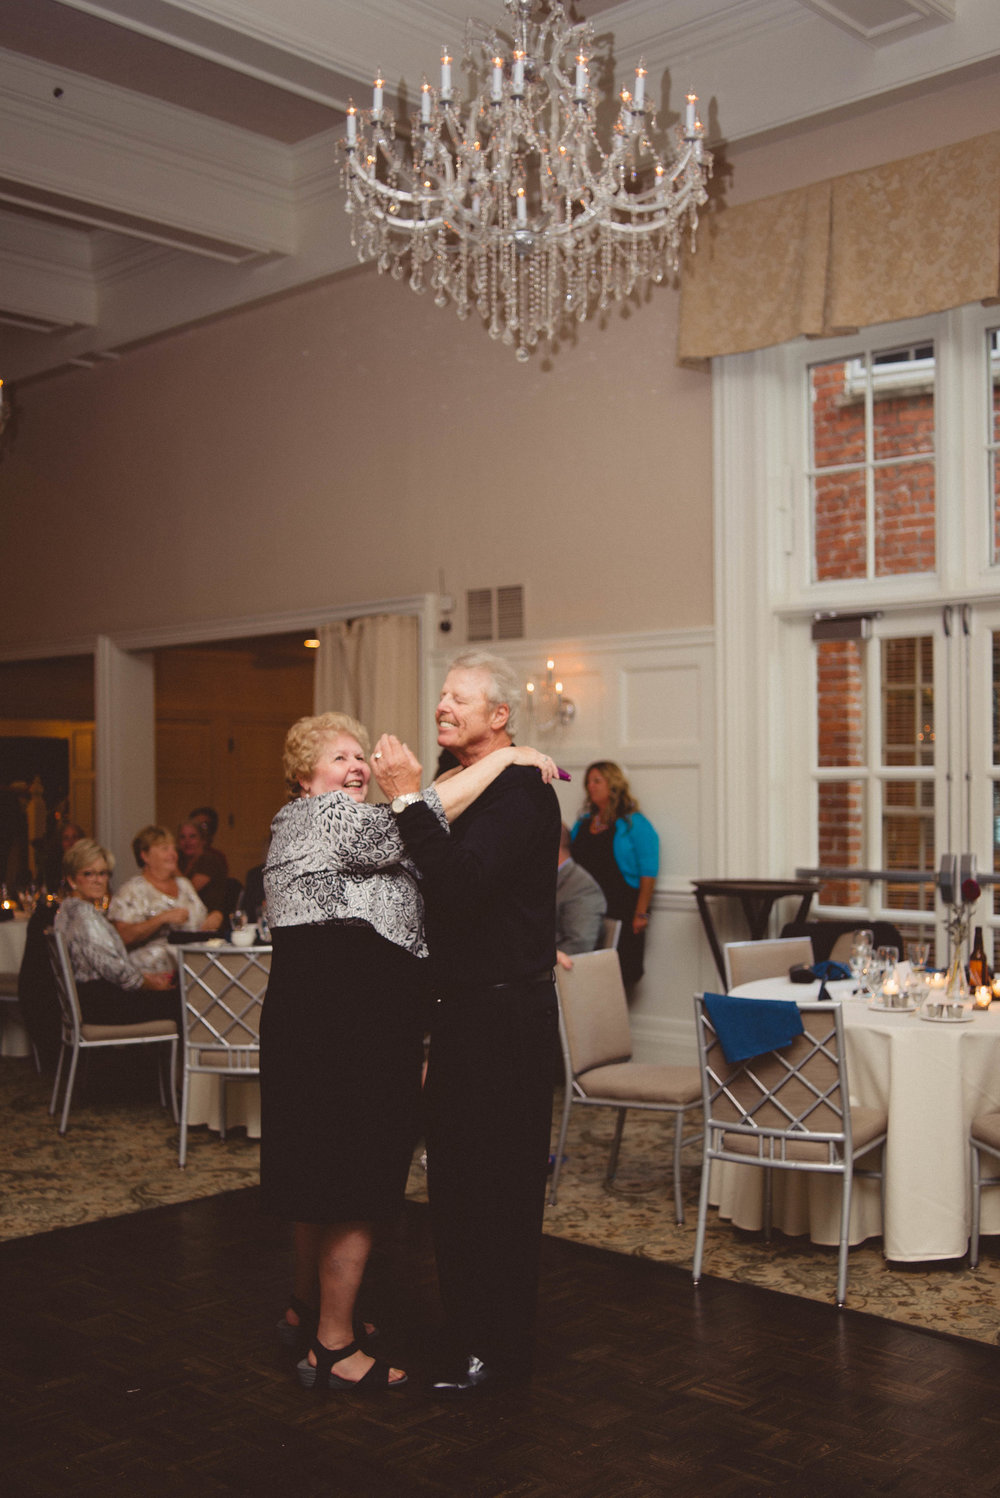 Kara and Mike Wedding-20160904-19-35-38.jpg